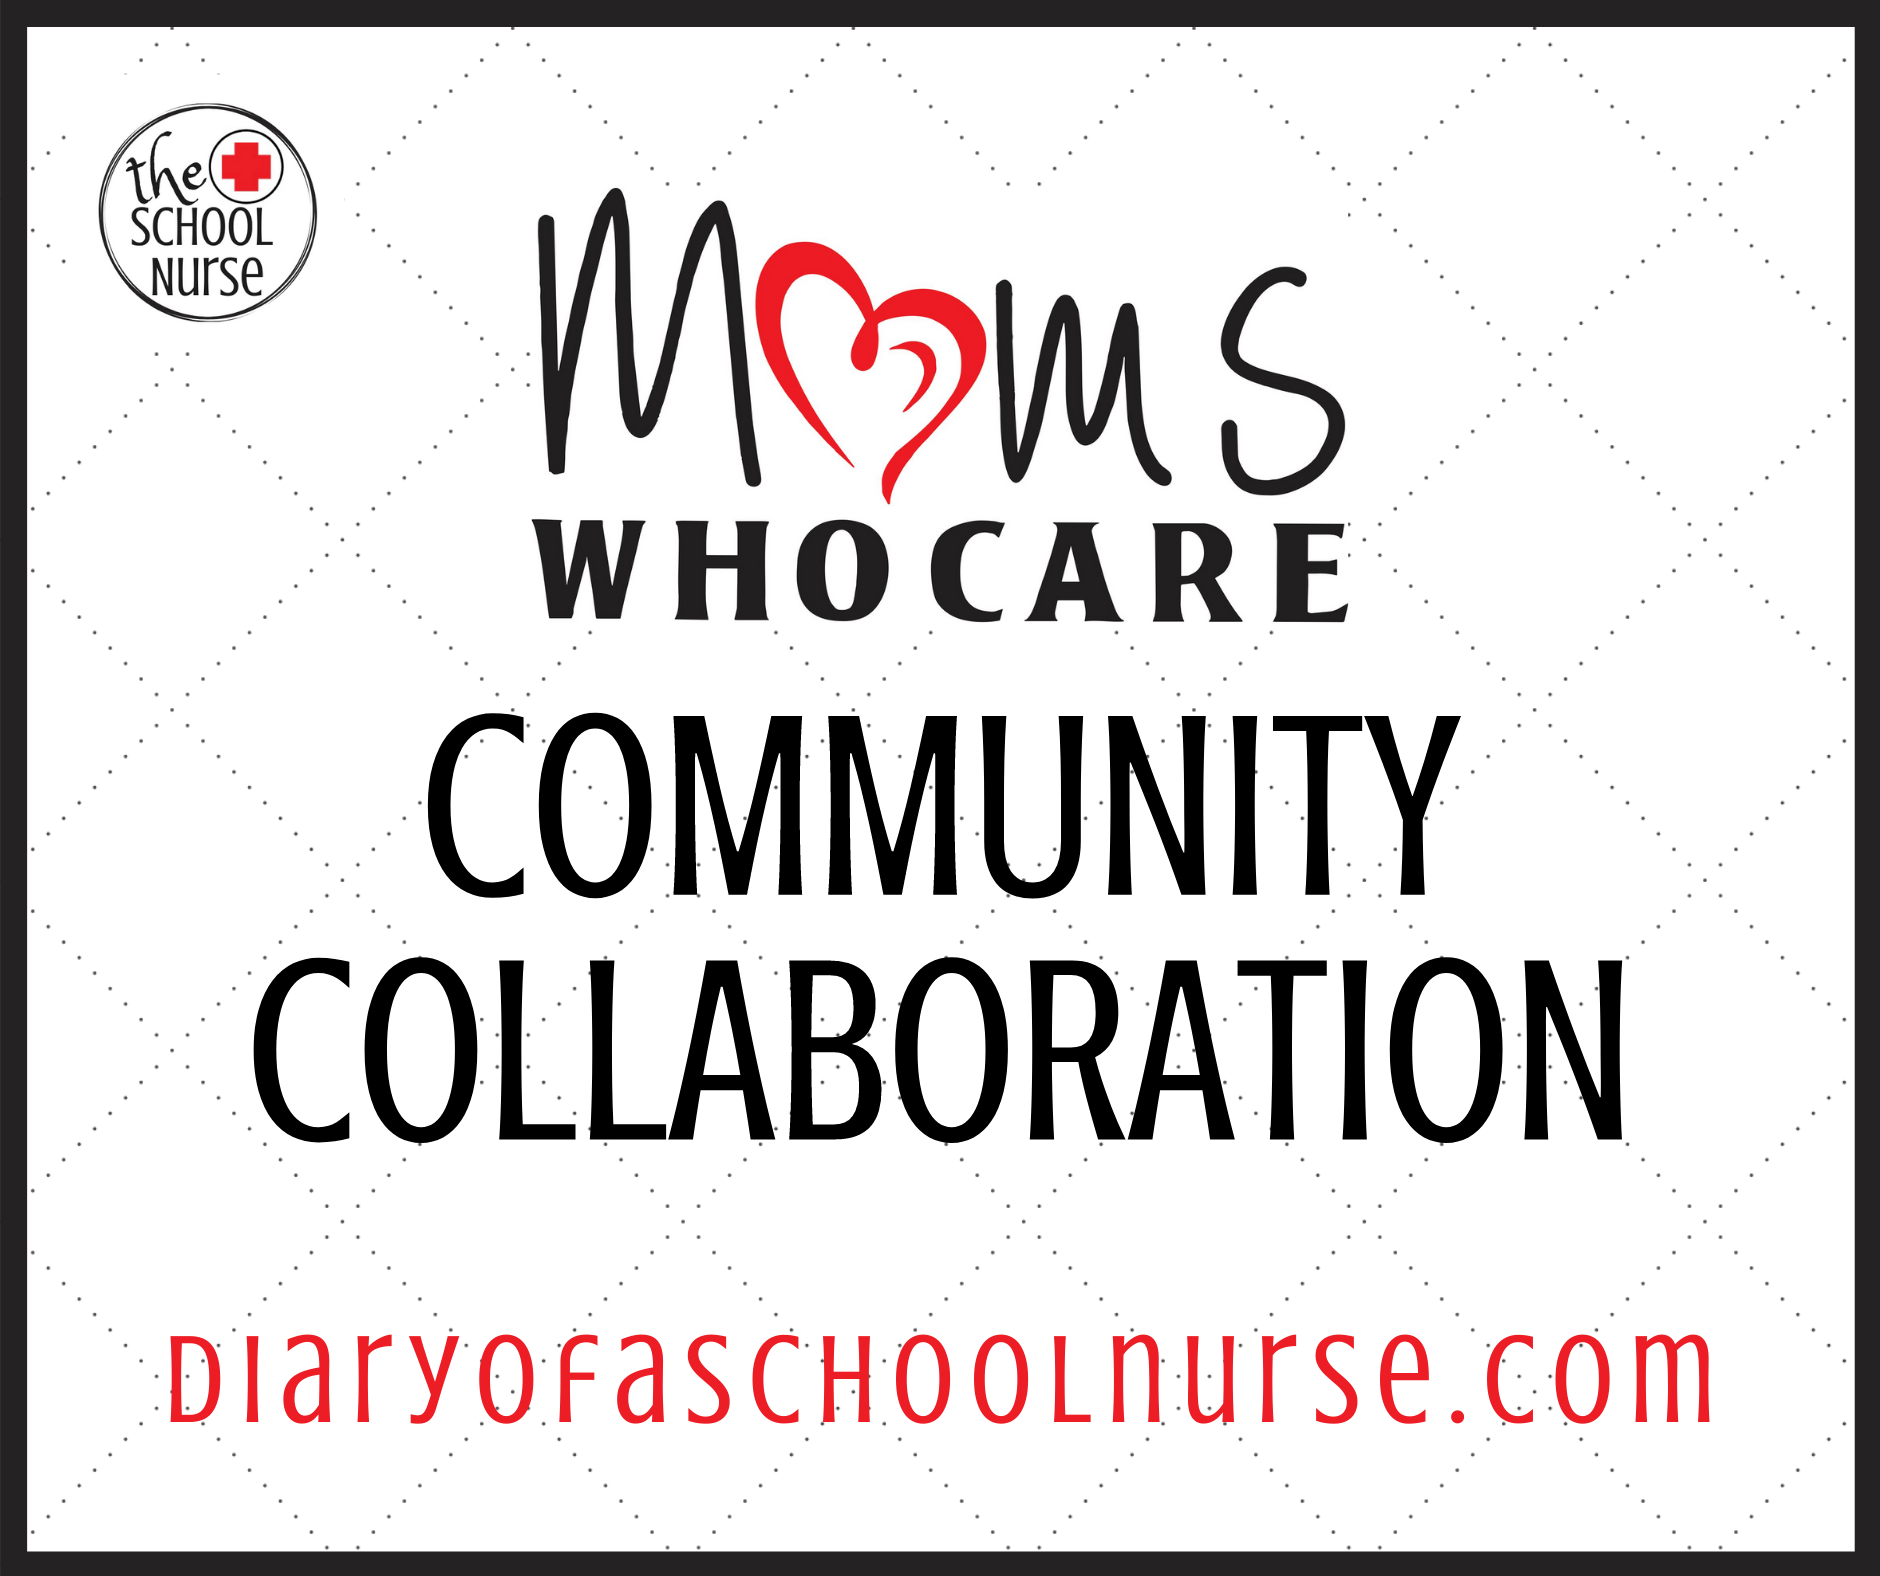 The Relentless School Nurse: 'Moms Who Care' Because it